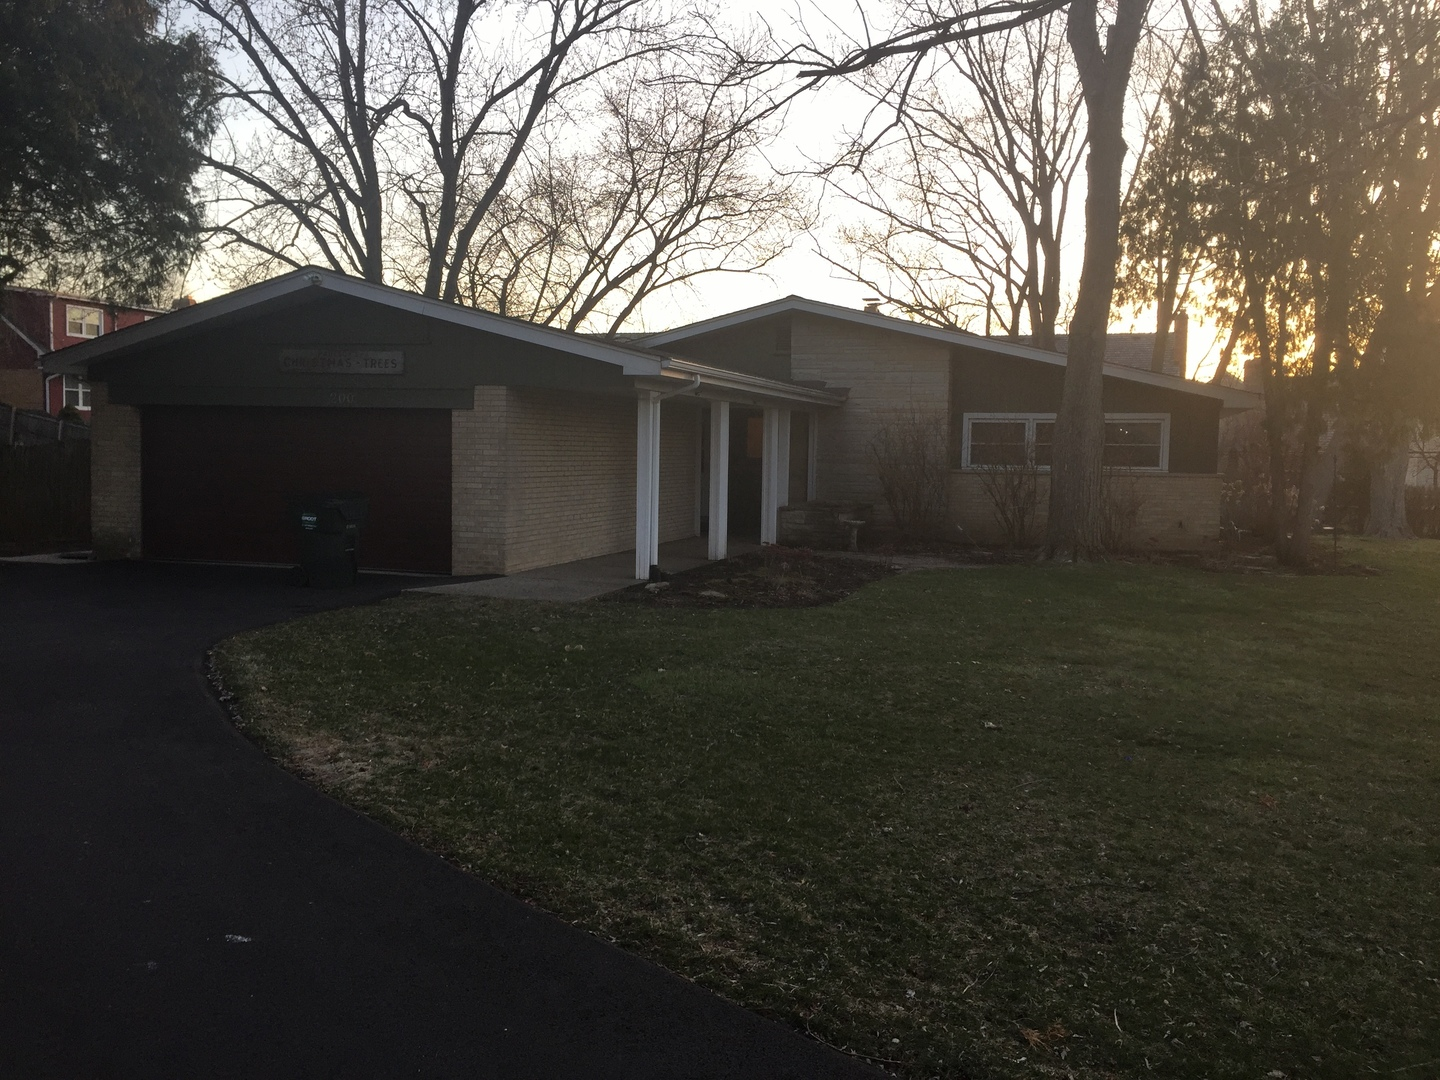 200 Sharon Drive, Barrington in Lake County, IL 60010 Home for Sale